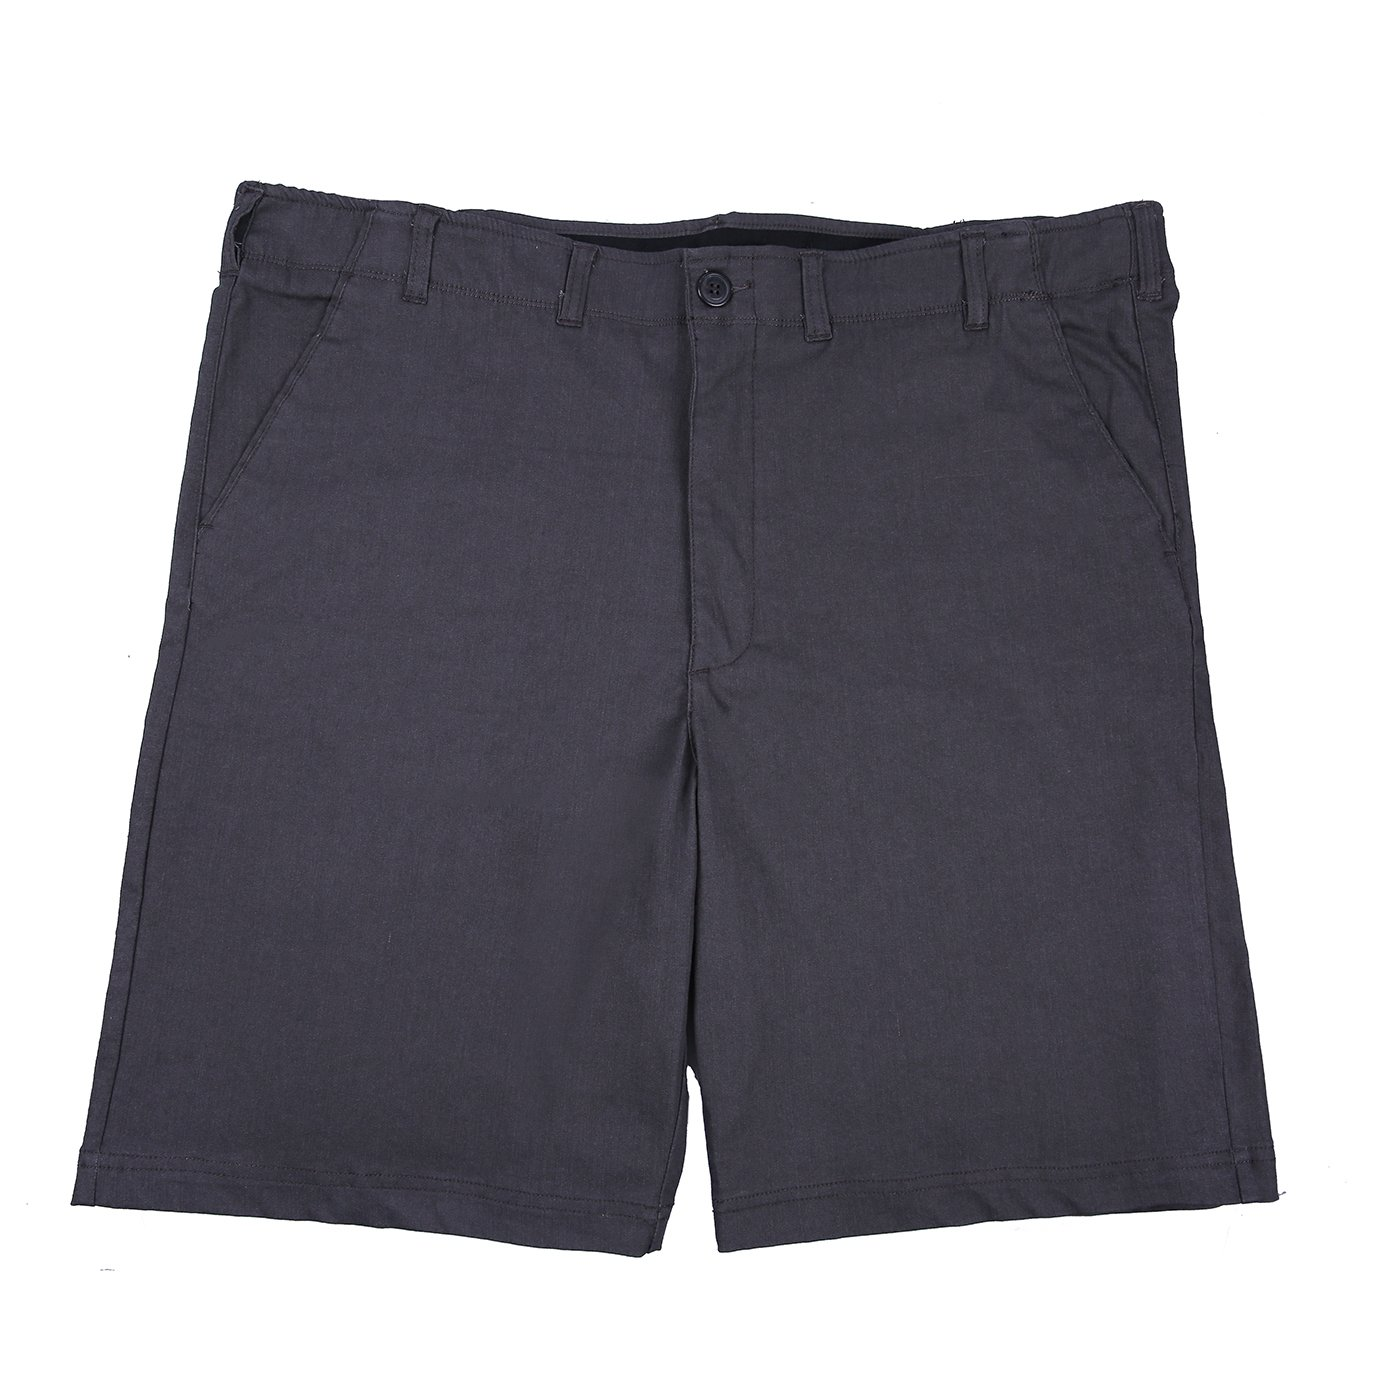 HDE Mens Big and Tall Shorts Comfort Waist Classic Fit Twill Cotton Blend Chino (Charcoal, 44)